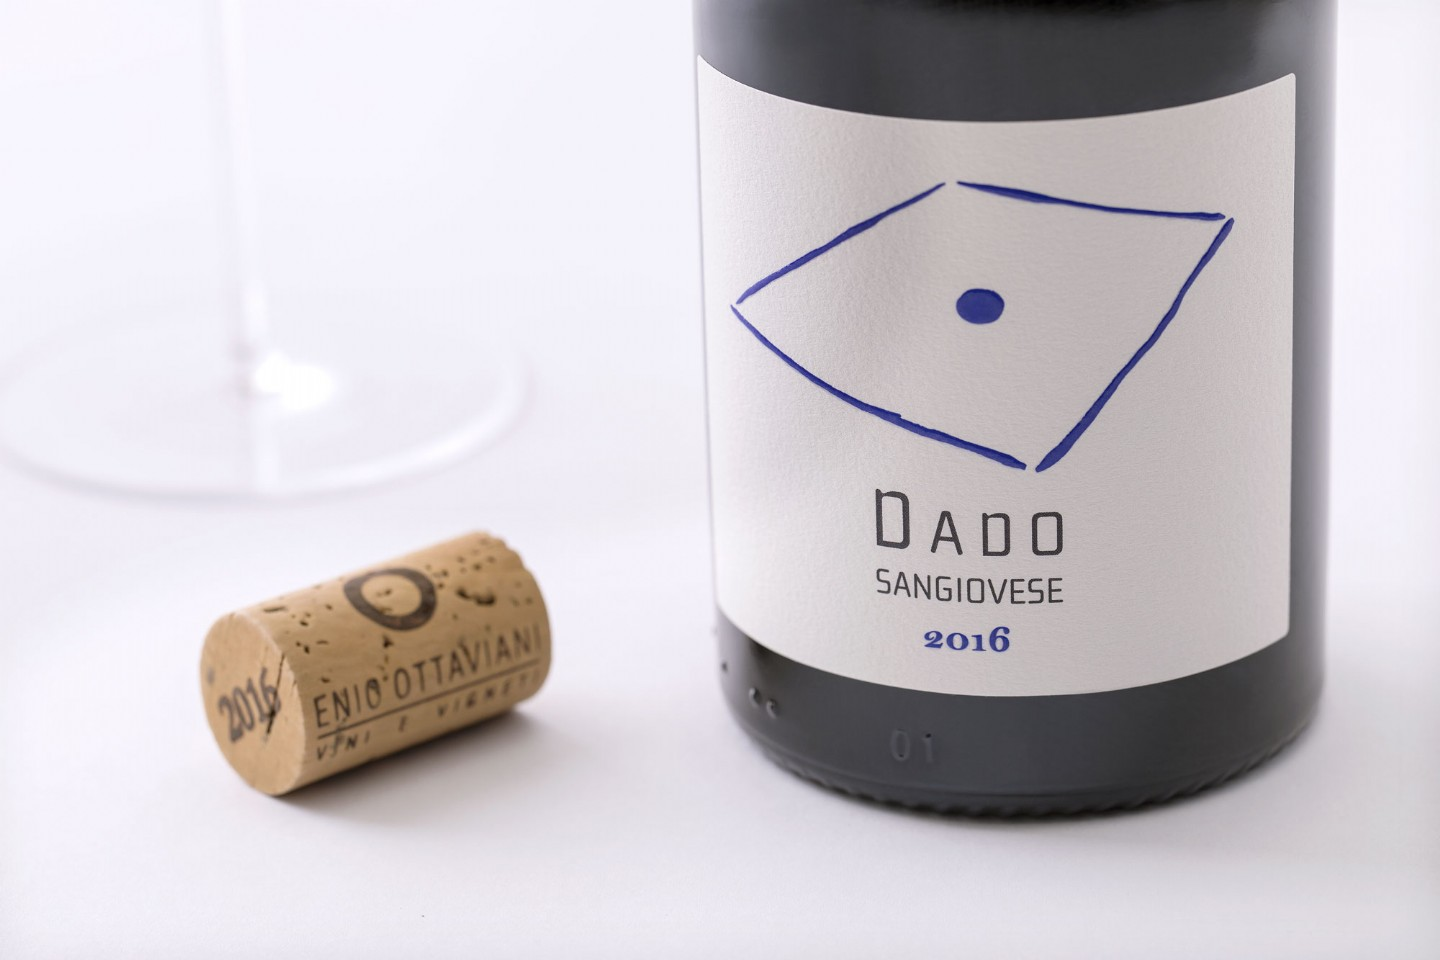 Dado: among the 50 best wines in the world according to the Gazzetta dello Sport